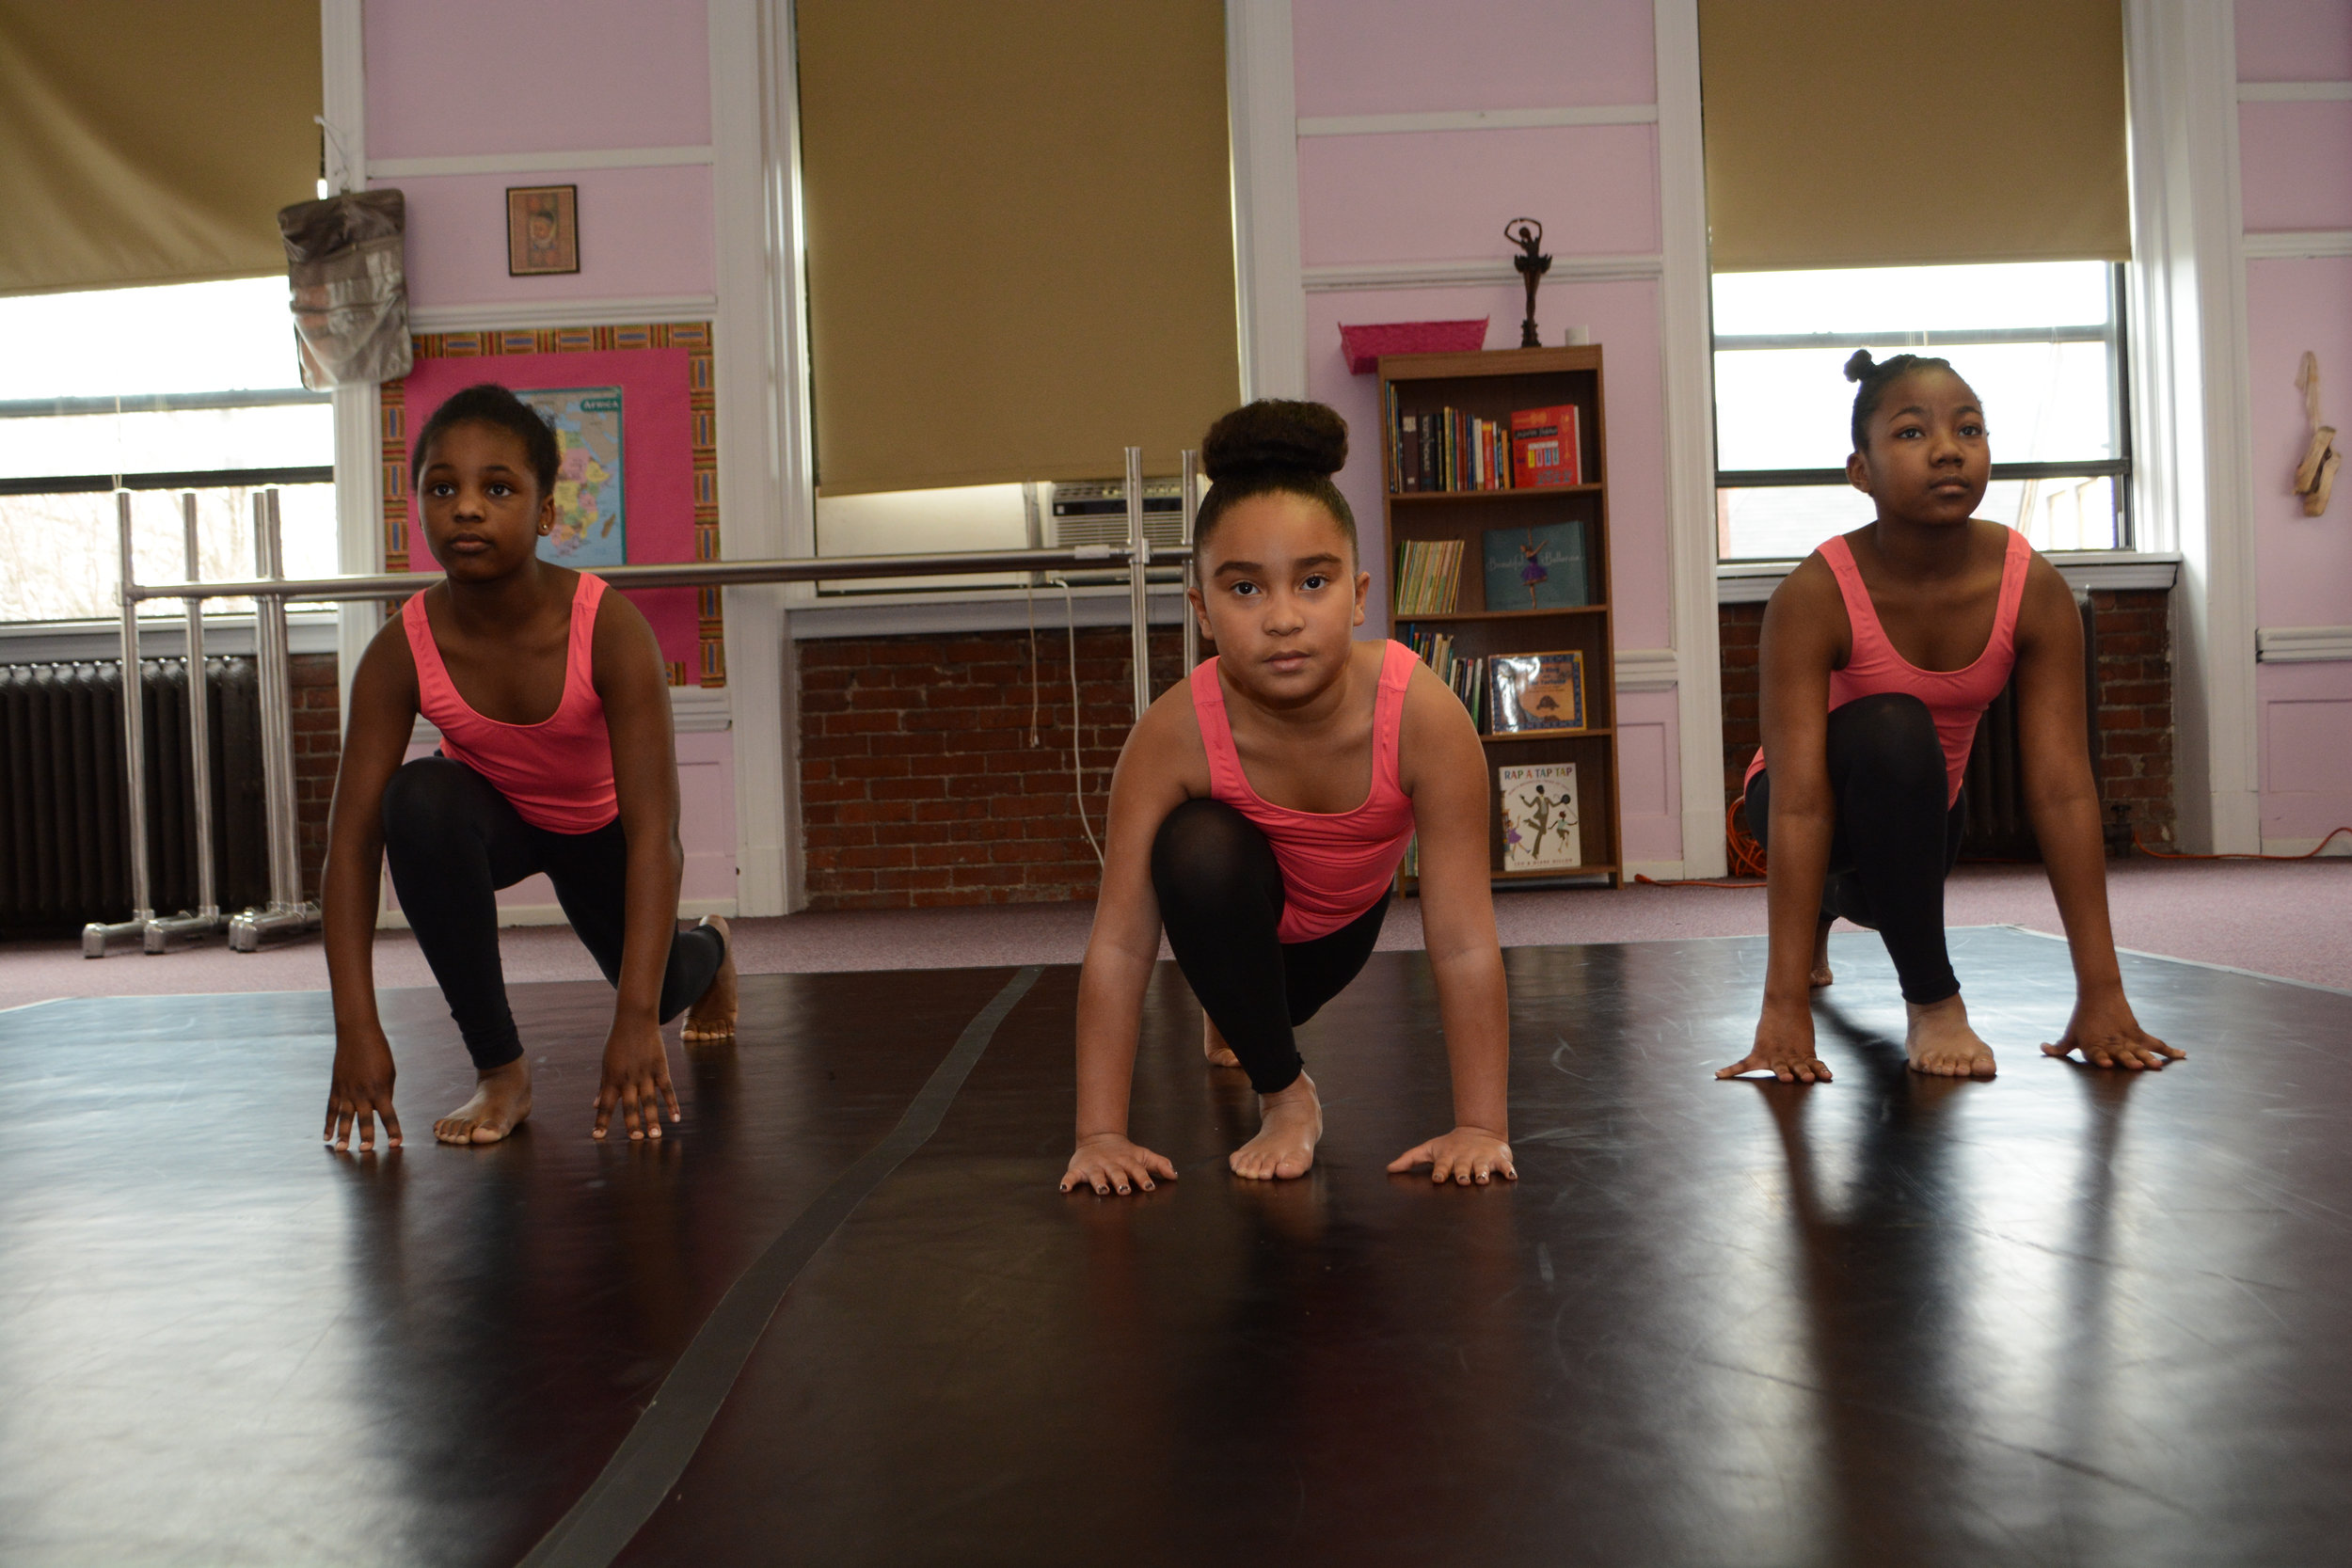 Hill Dance Academy Theatre students prepare for class through stretching